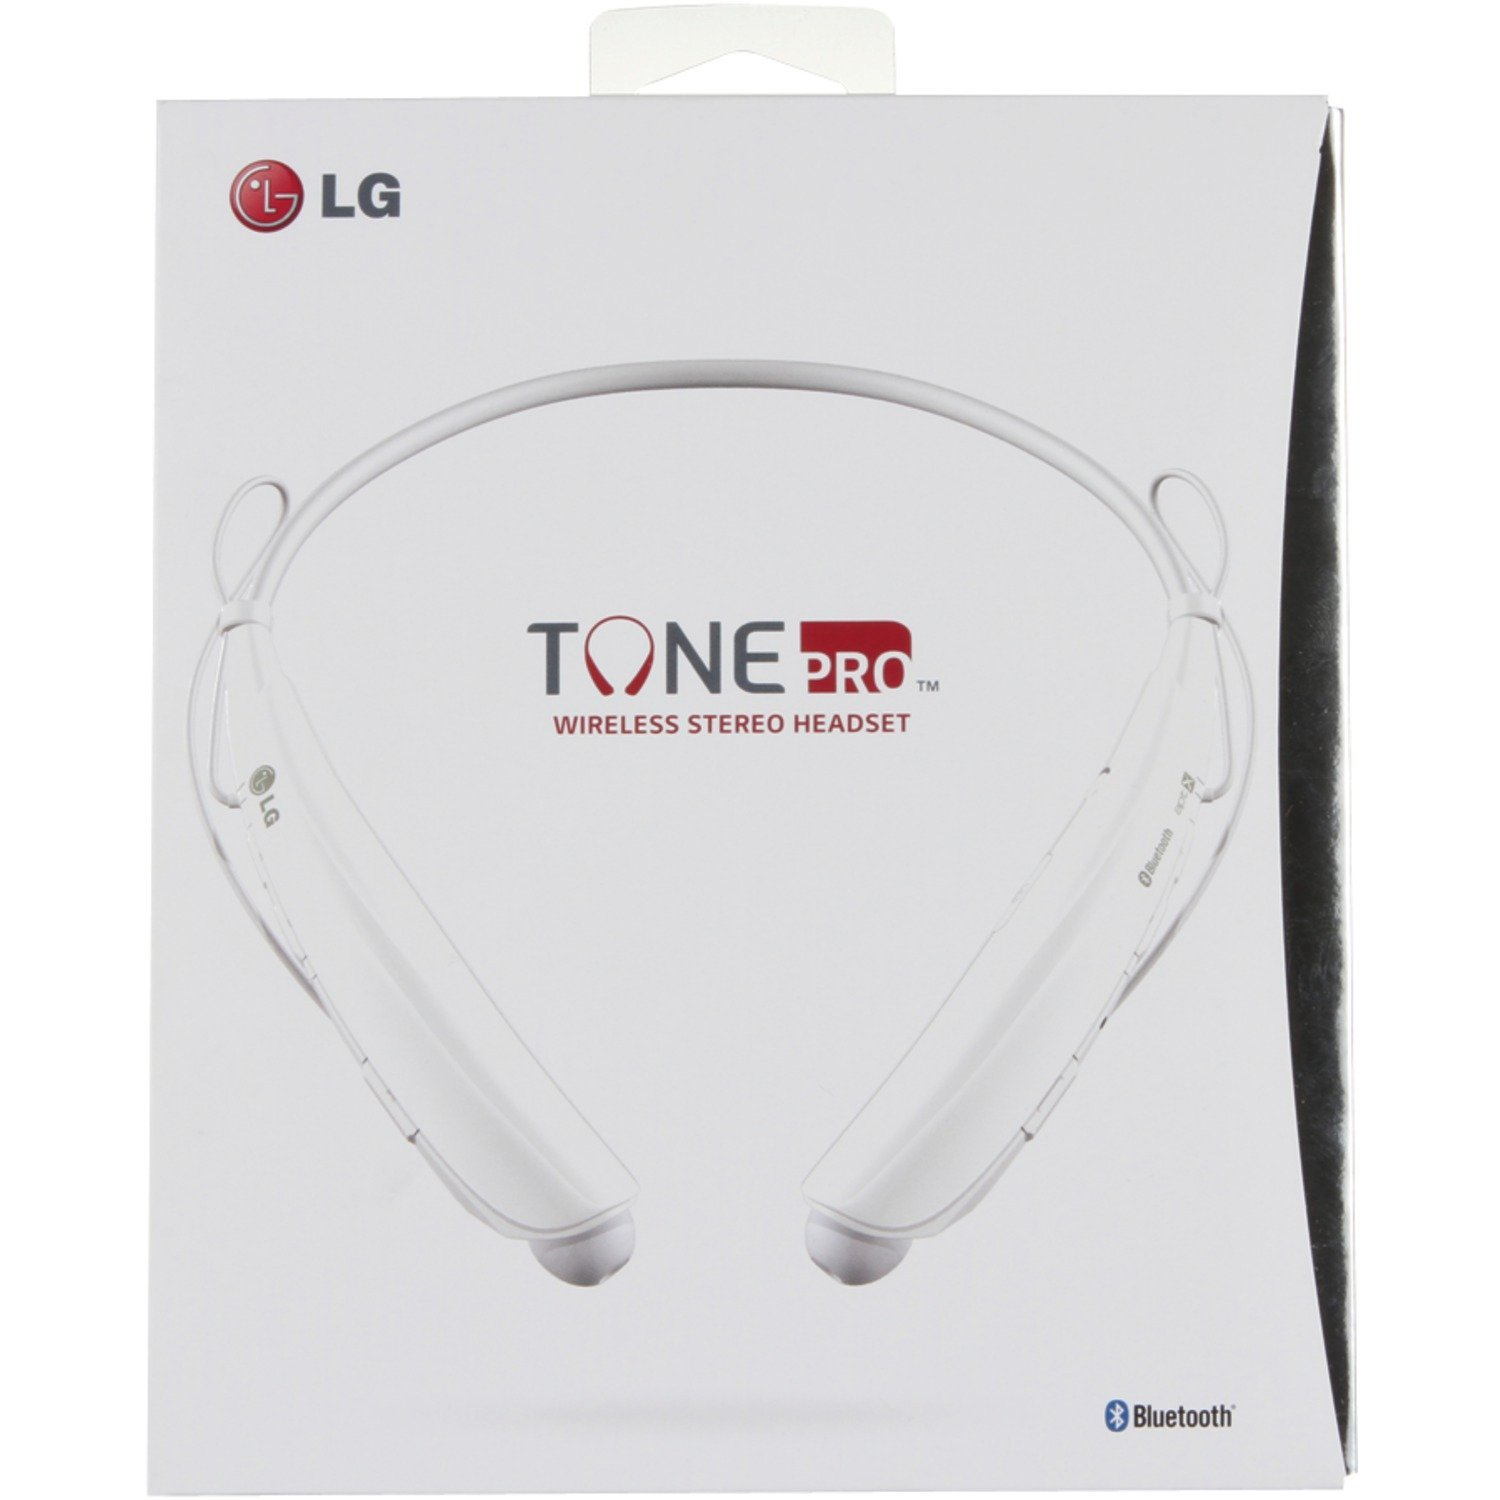 LG Tone Pro Bluetooth Stereo Headset White - 4124C